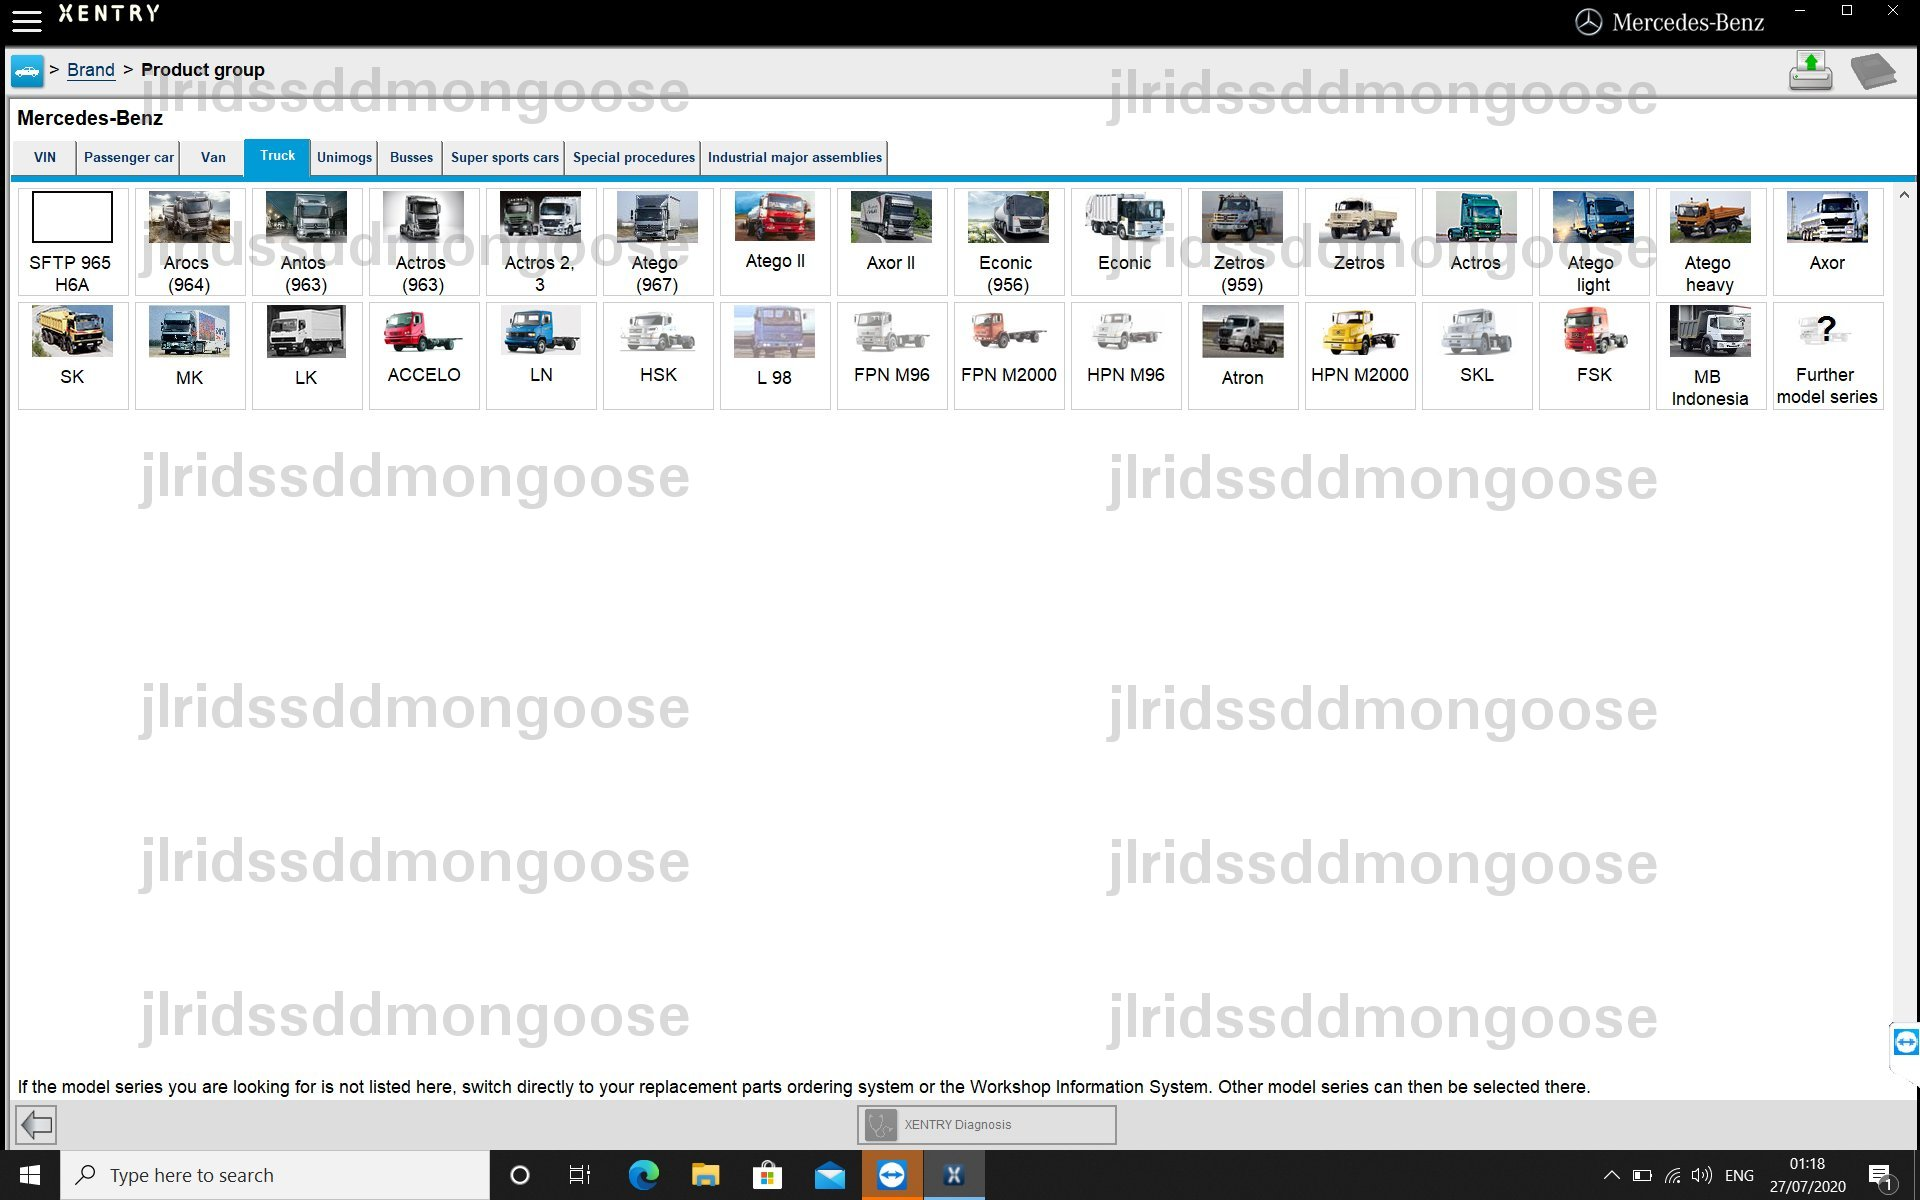 Jaguar Ids 1995 To 2005   Land Rover Sdd 2005 To Present